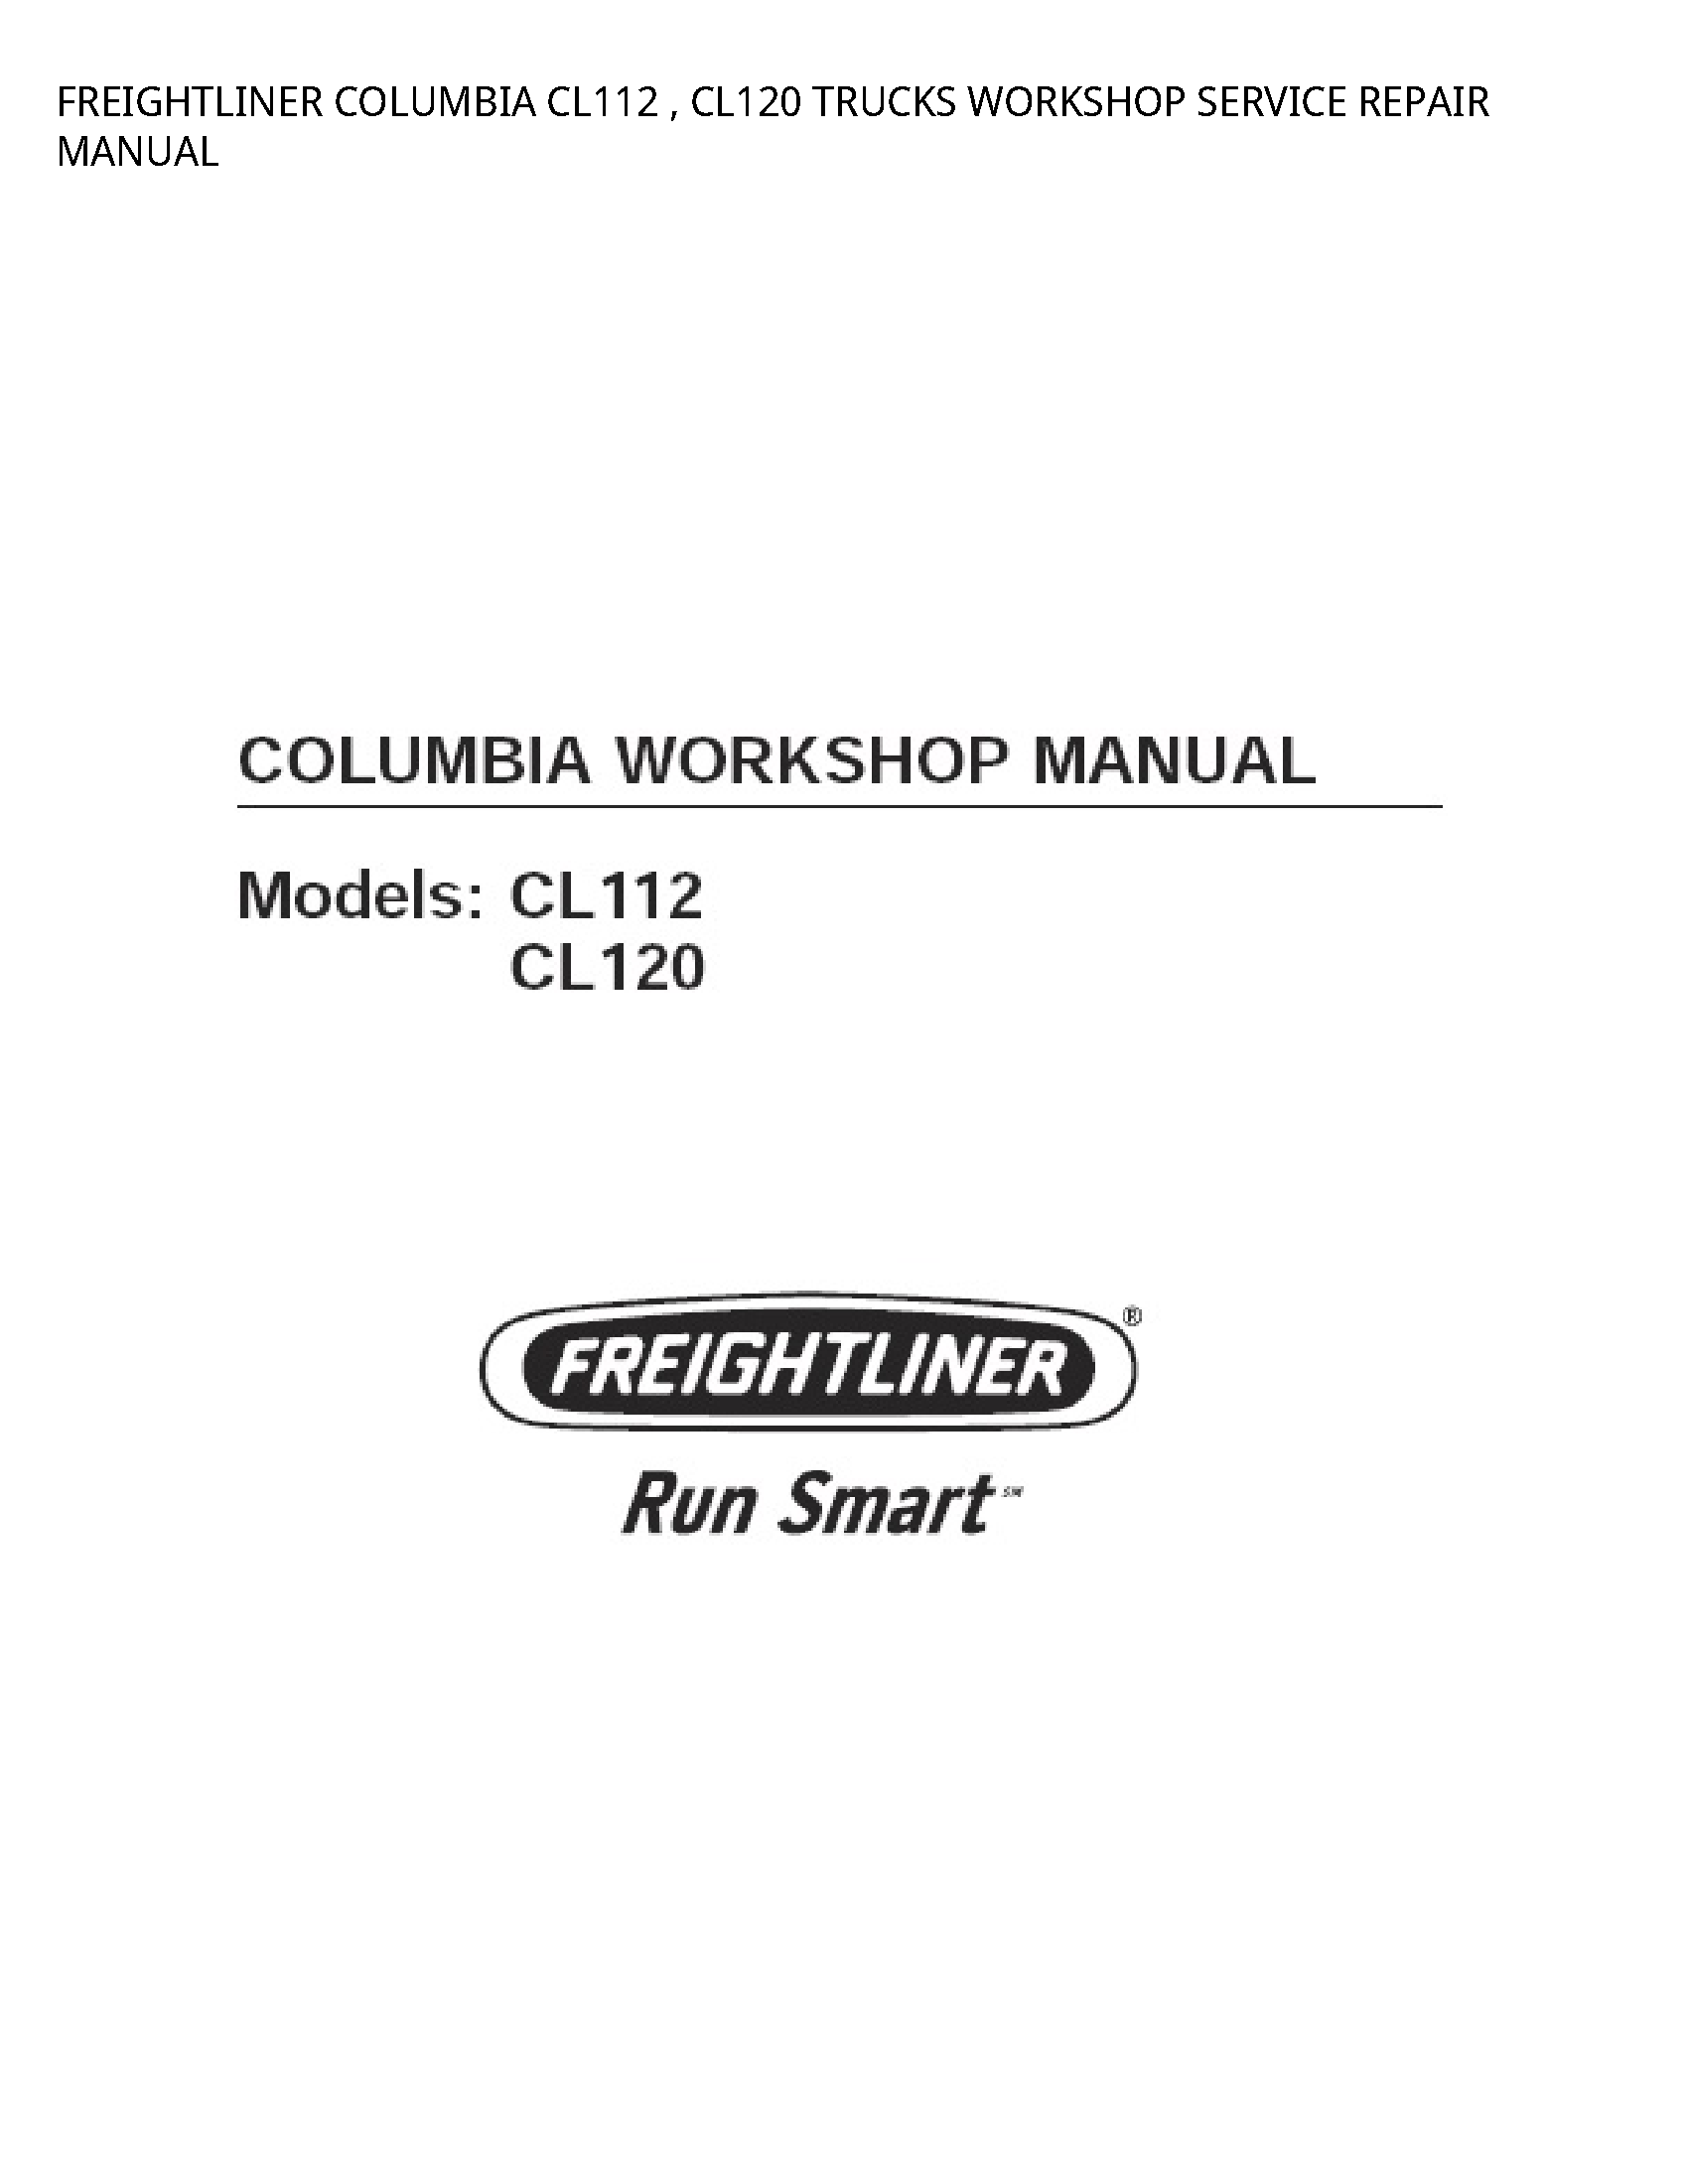 Freightliner CL112 COLUMBIA TRUCKS SERVICE REPAIR manual